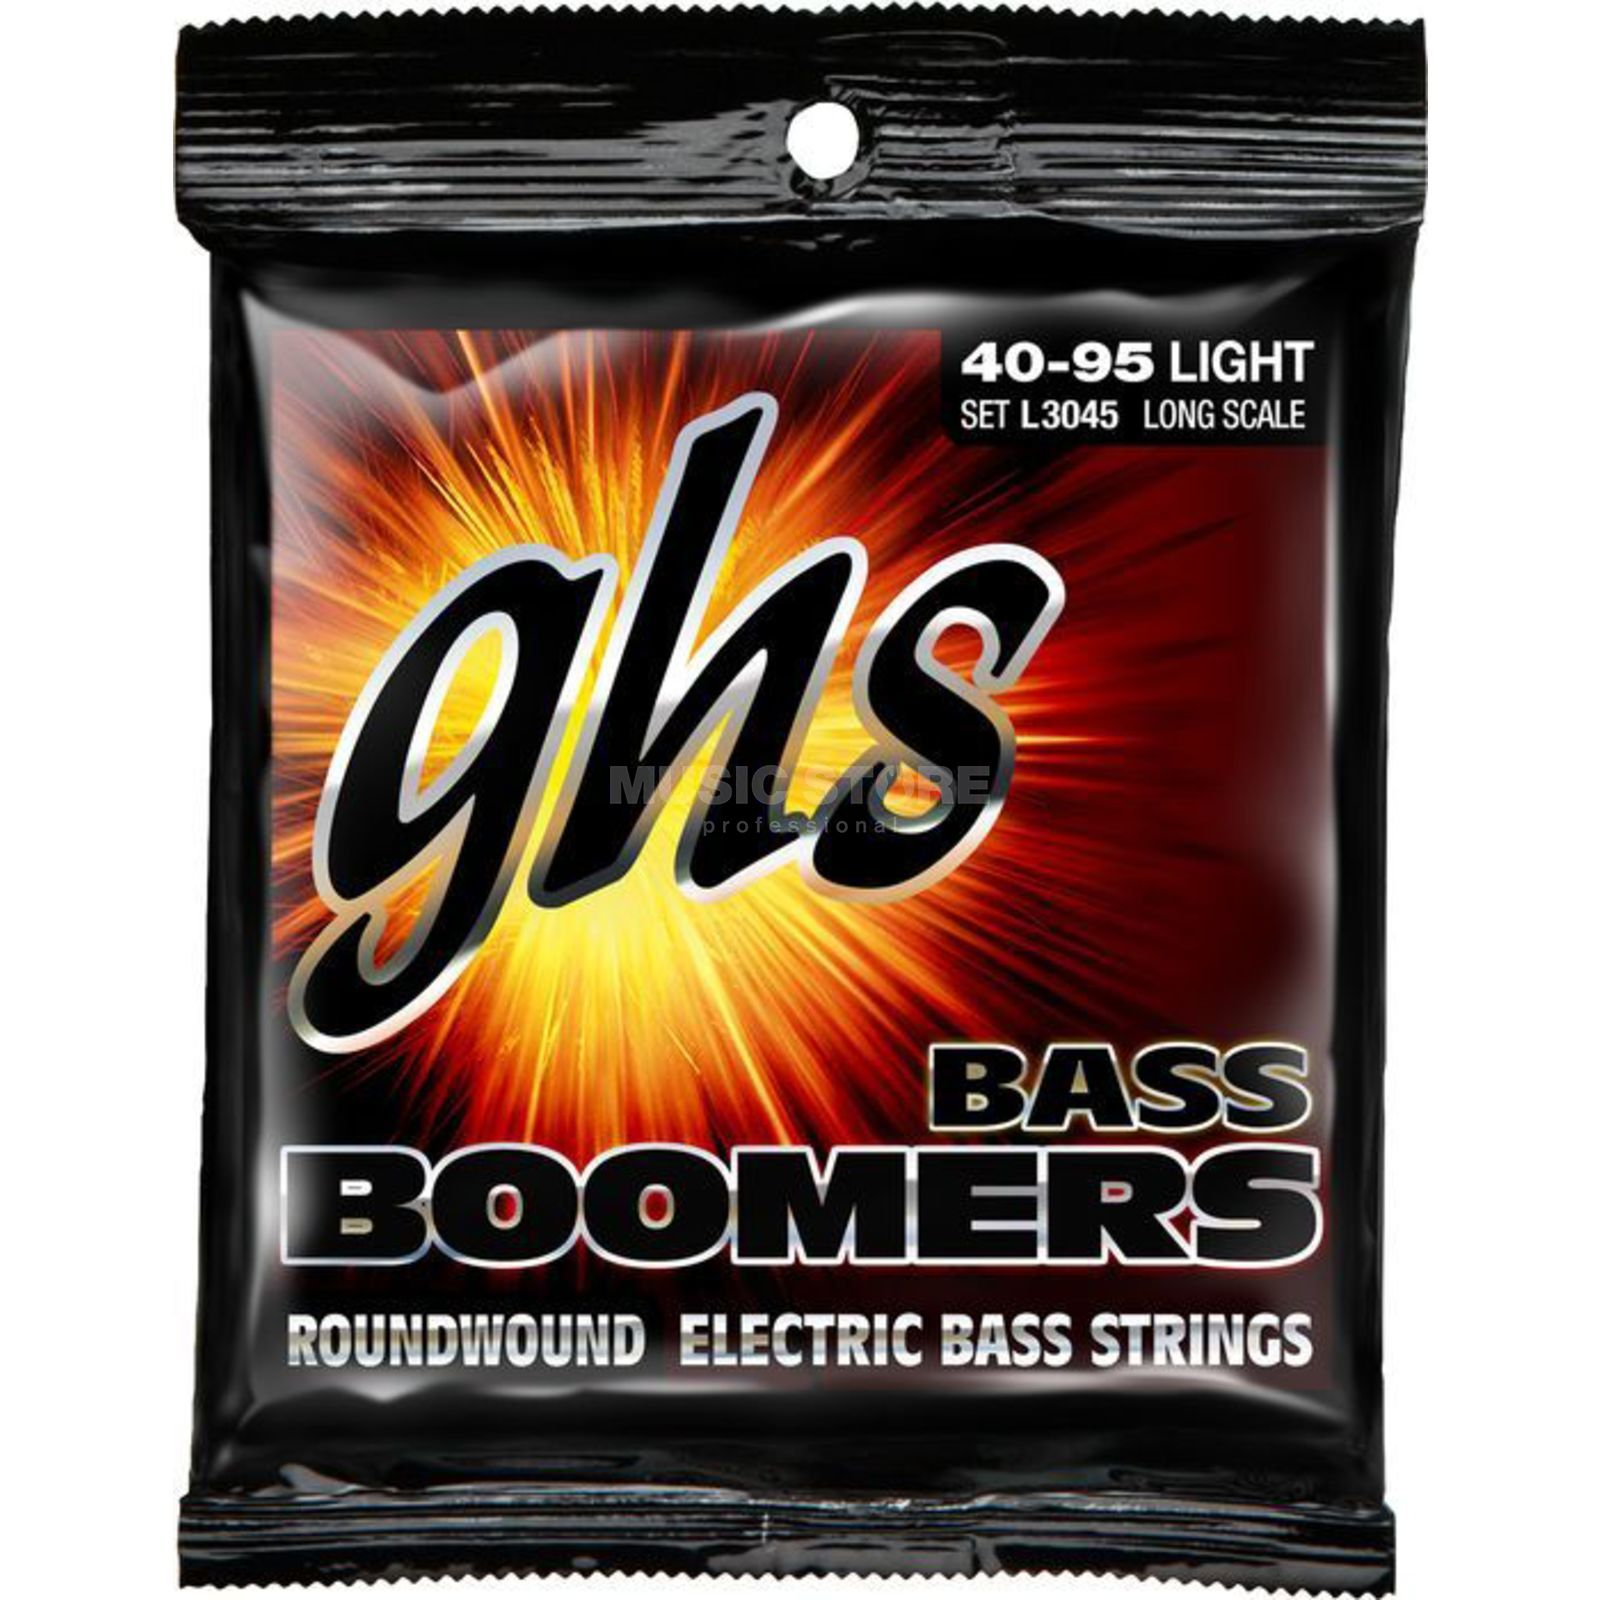 GHS 4 String Bass Boomers 40-95 Long Scale Plus 40-55-75-95 Product Image